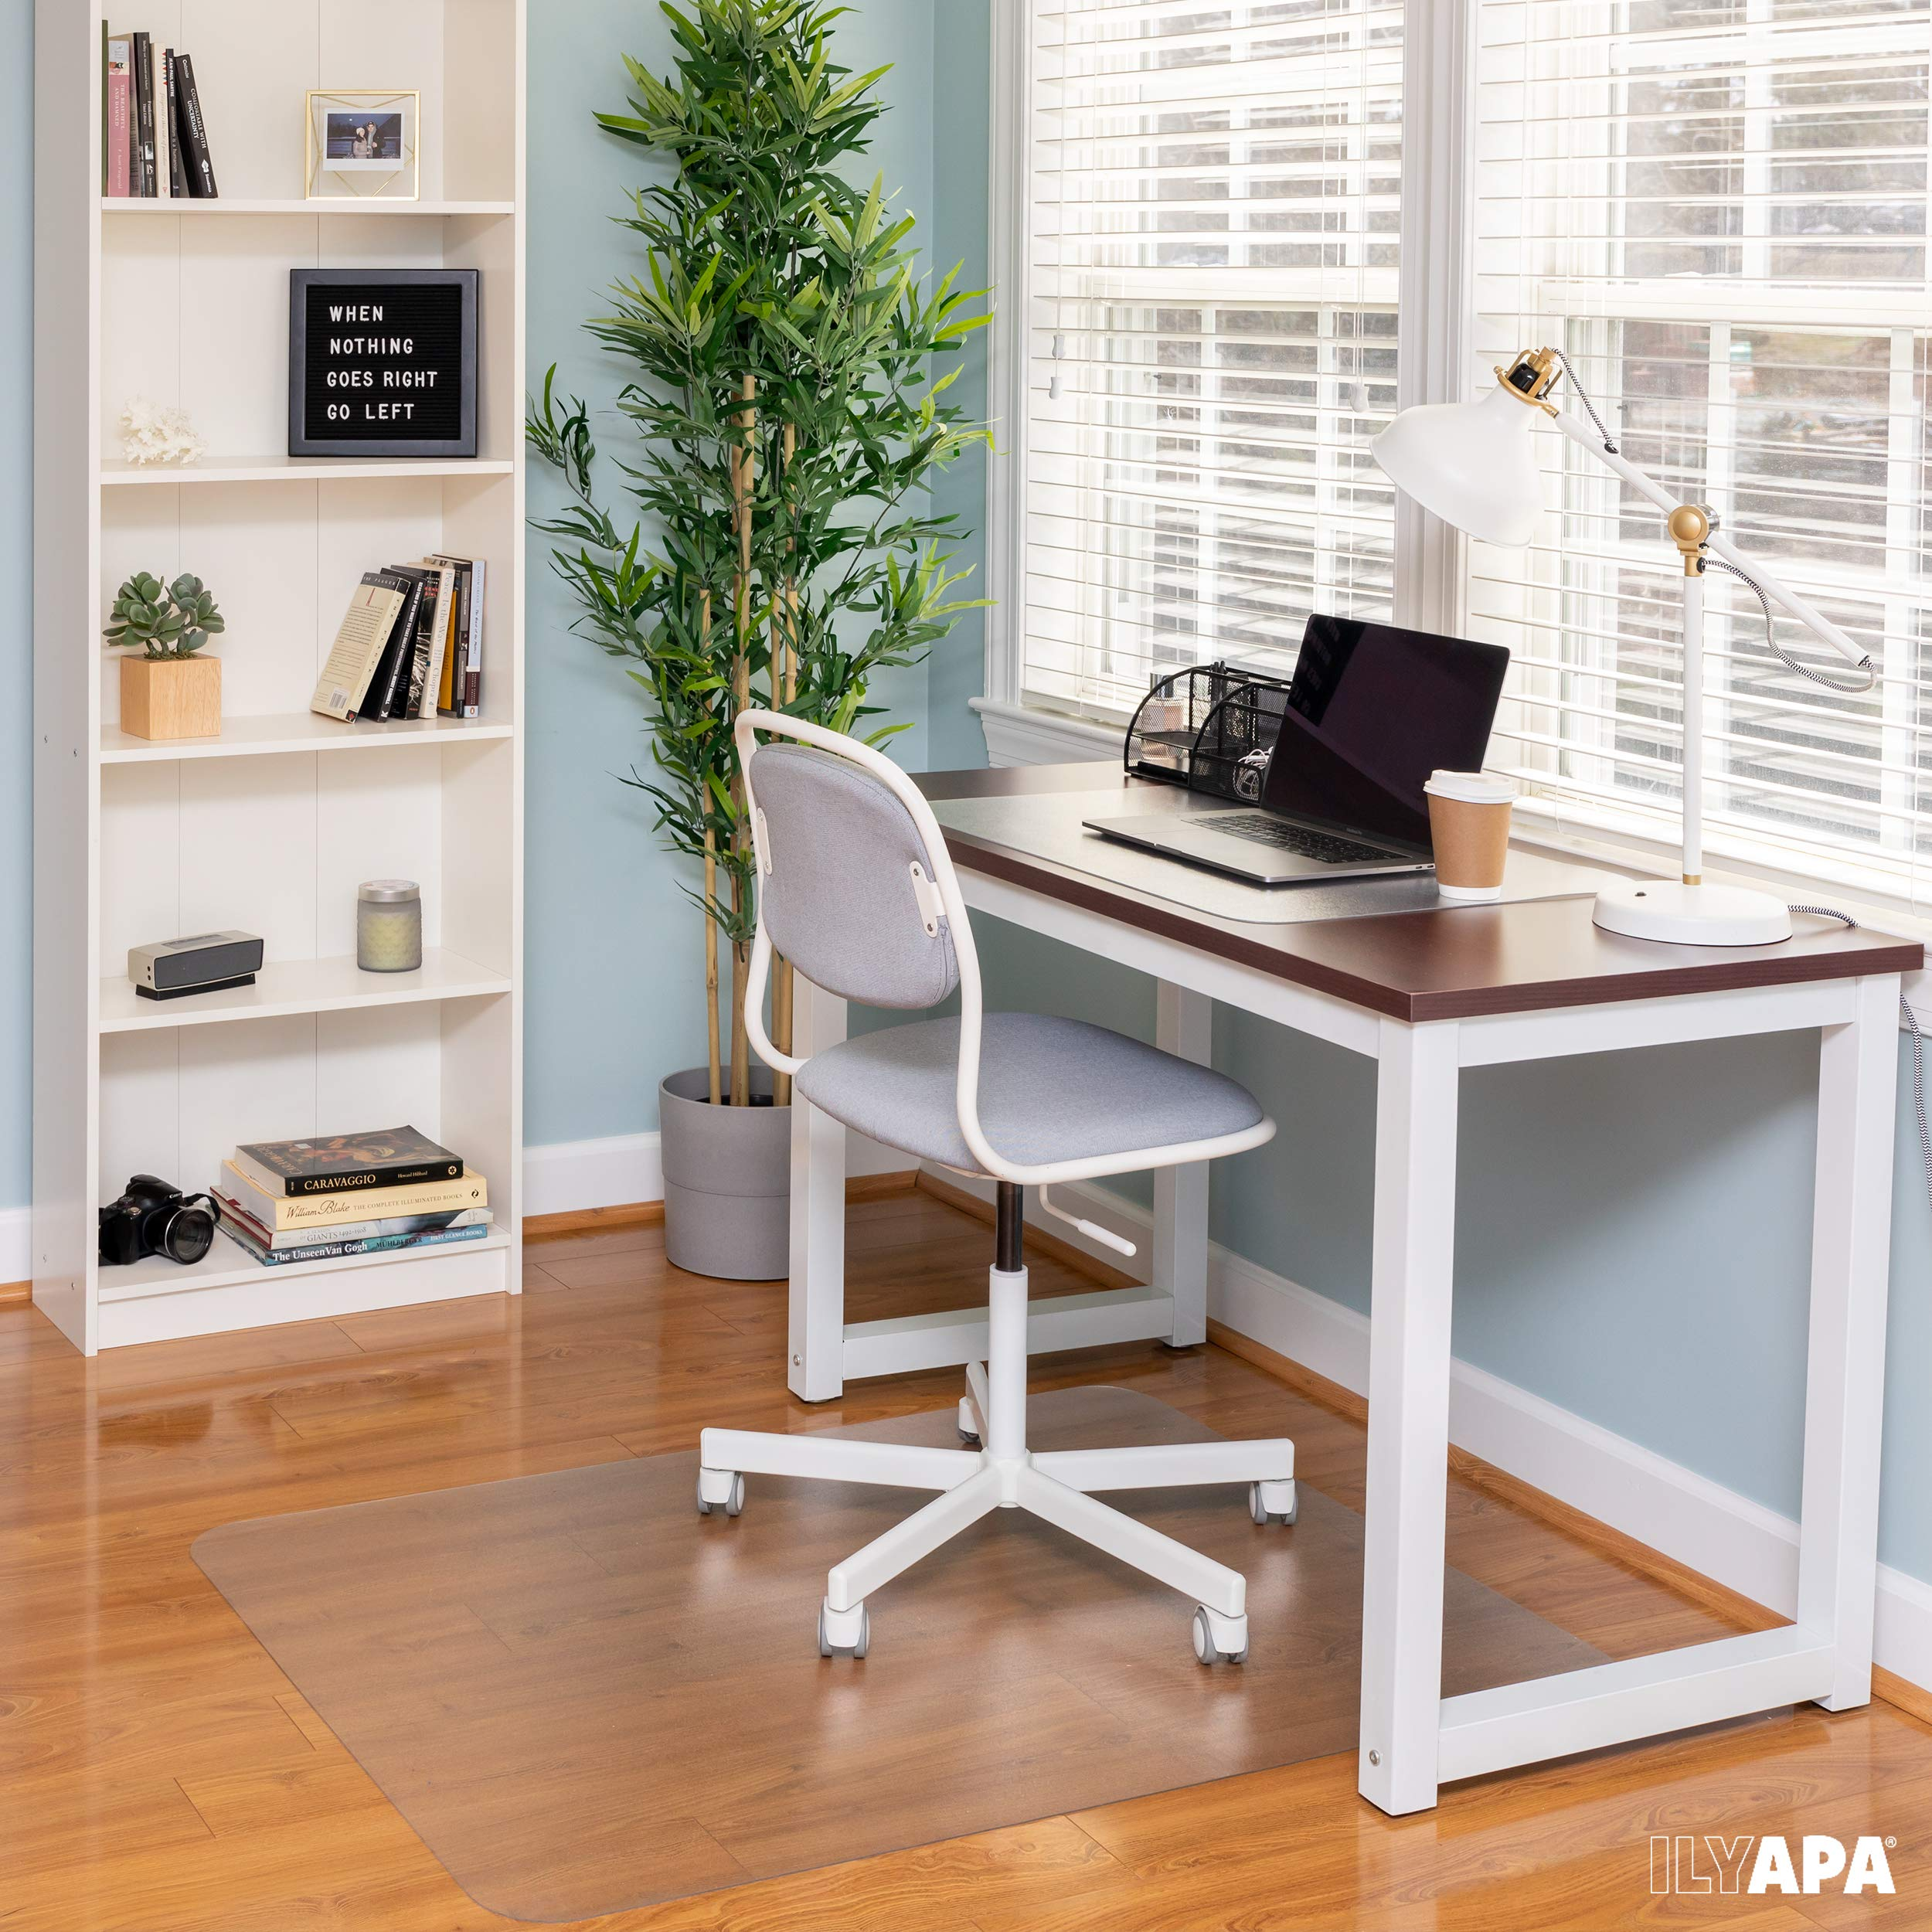 Office Chair Mat for Hard Floors 59 x 47 - Clear Hardwood Mat for Desk Chairs by Ilyapa (Image #6)